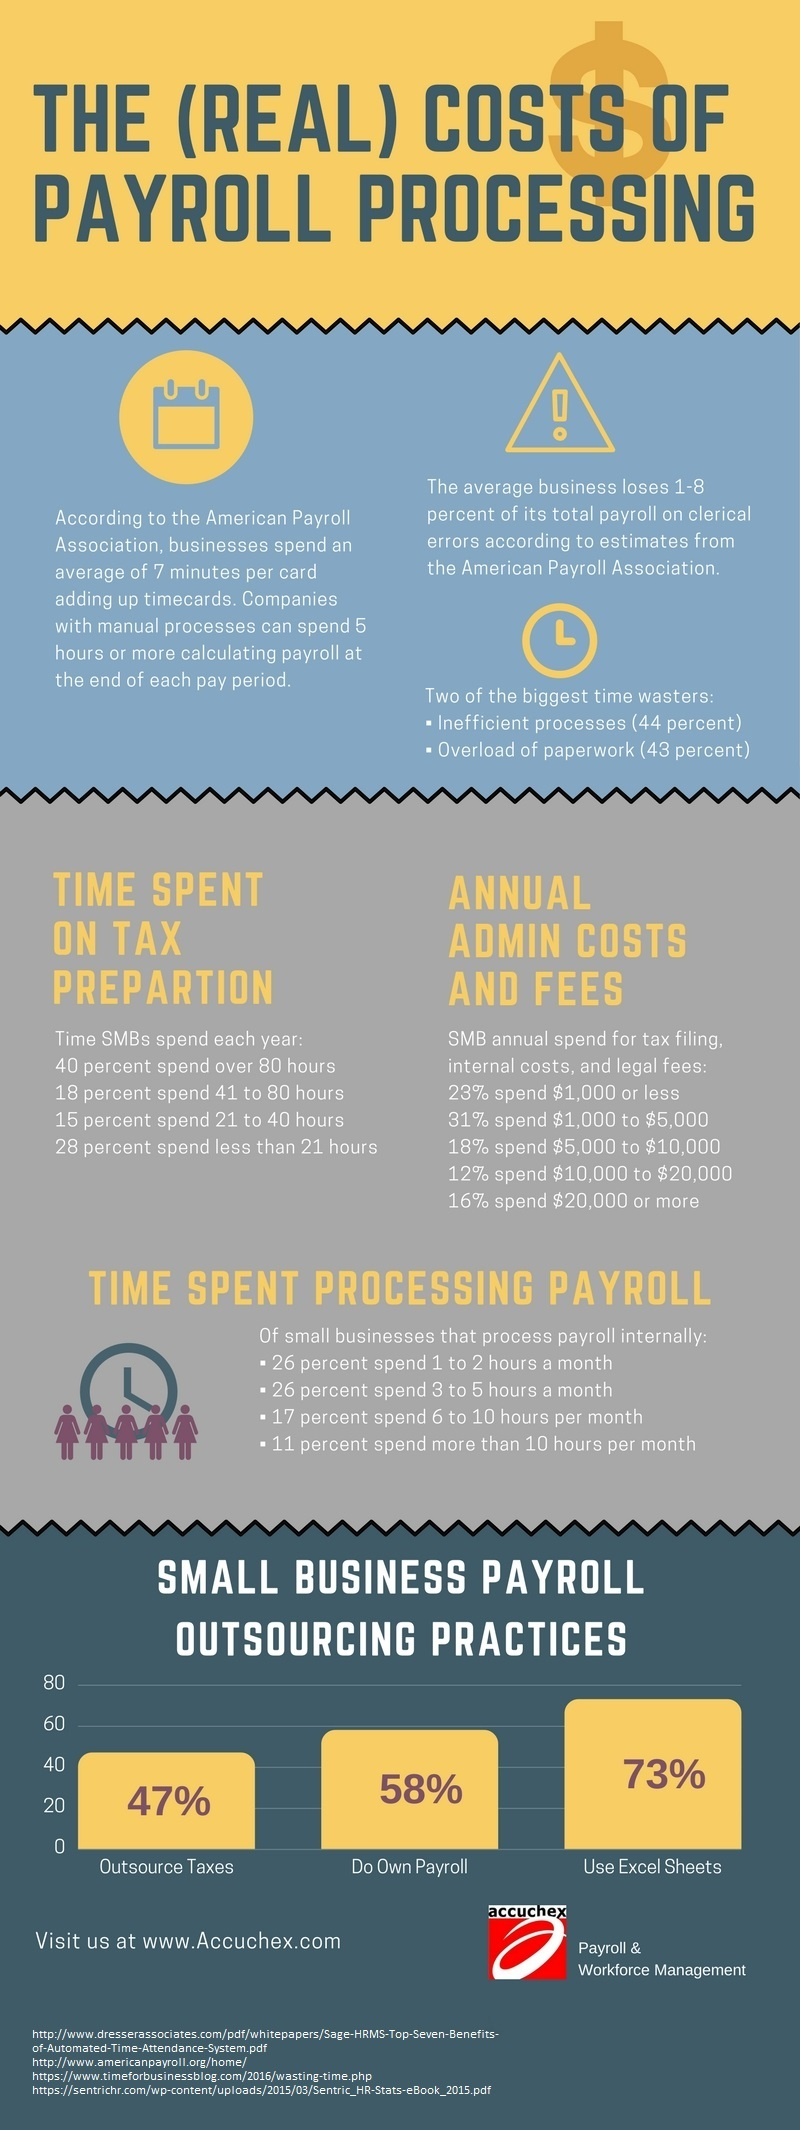 the-real-costs-of-payroll-processing.jpg